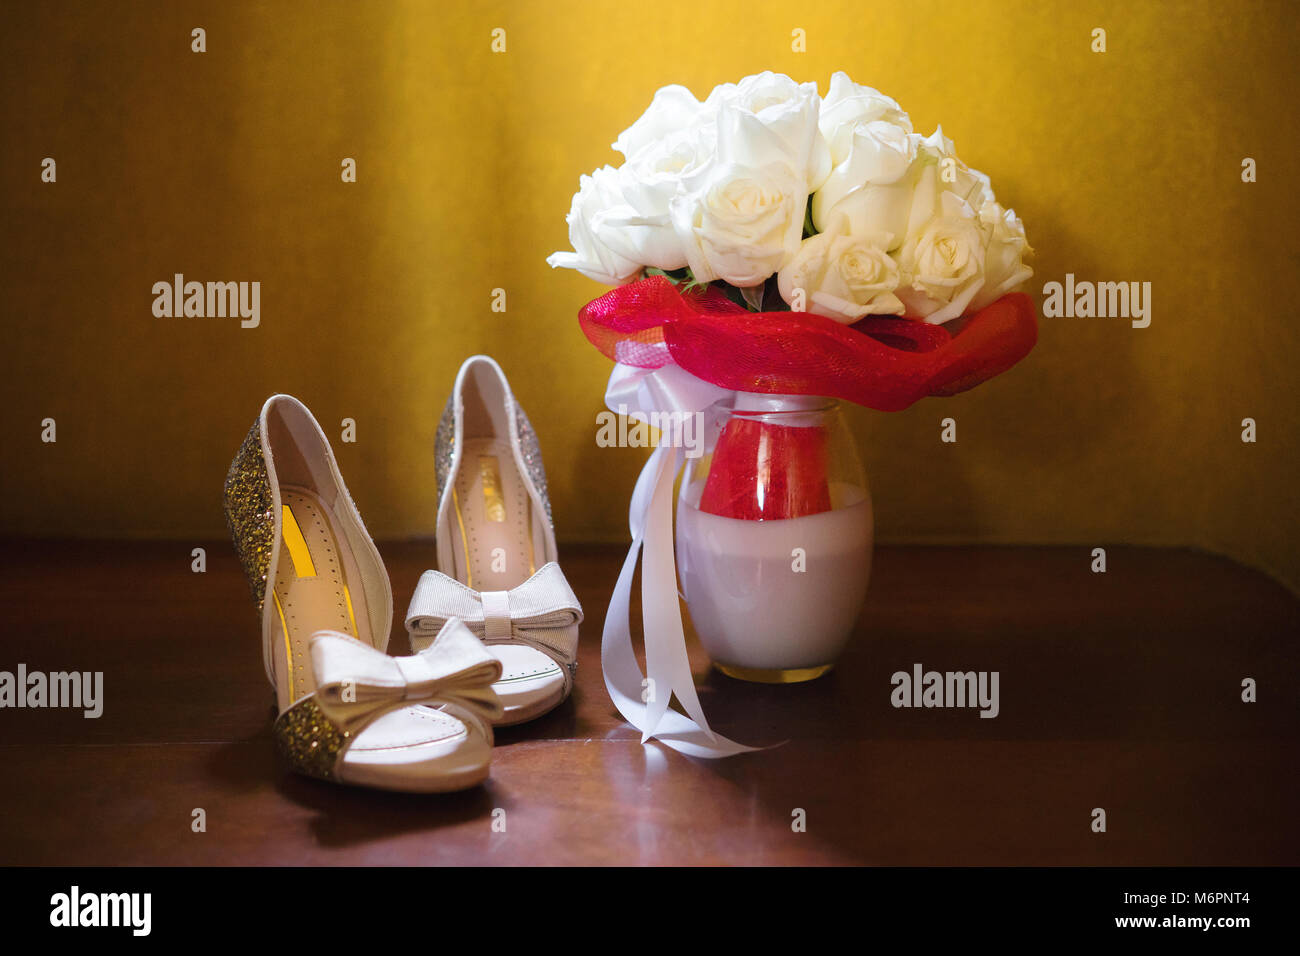 The bouquet of the bride with cream roses and the bride's shoes, on the wooden floor wth yellow background, the Stock Photo